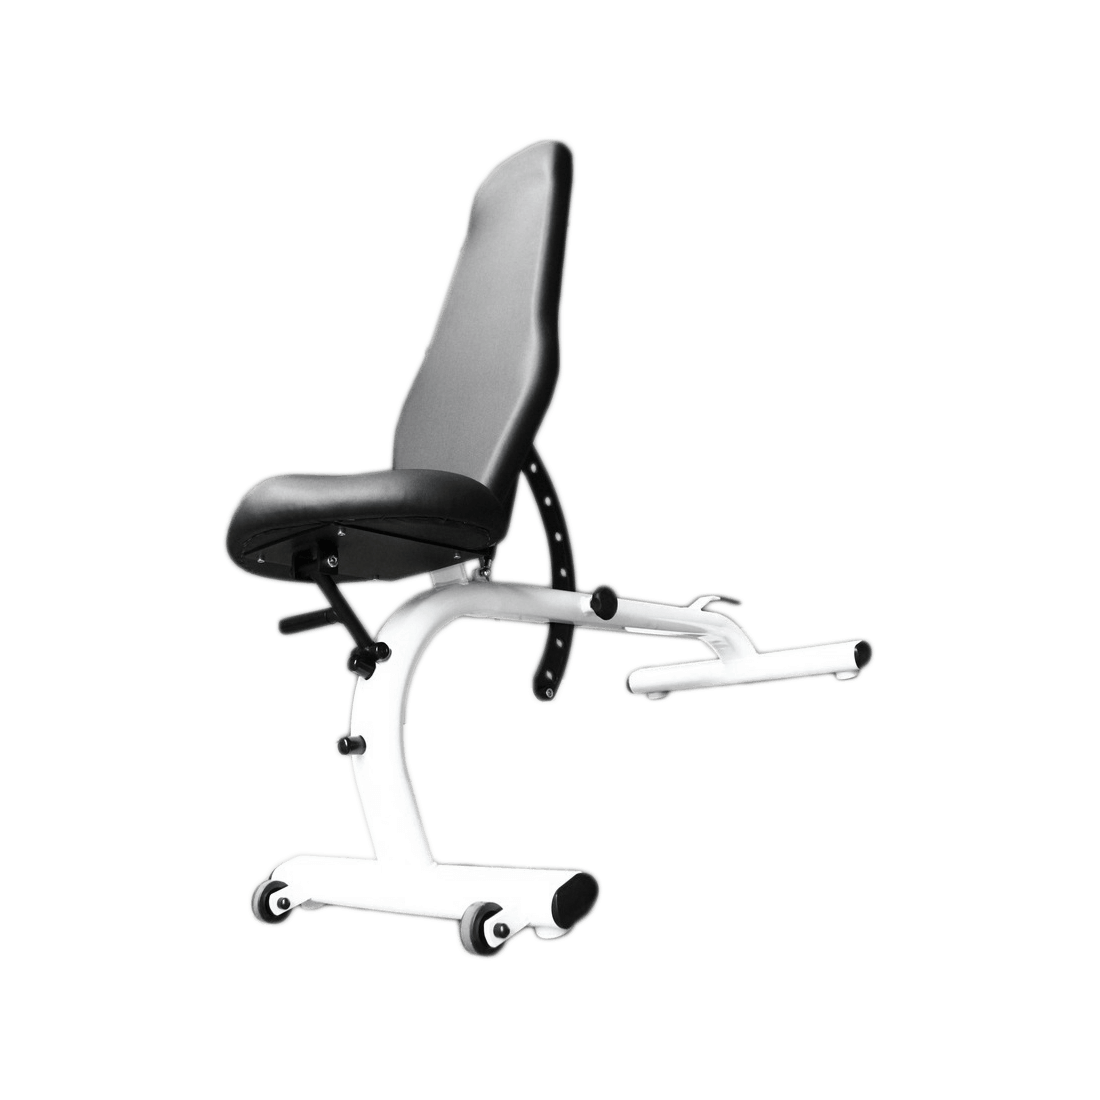 Banc Inclinable Et Déclinable Kv07 Ortus Fitness